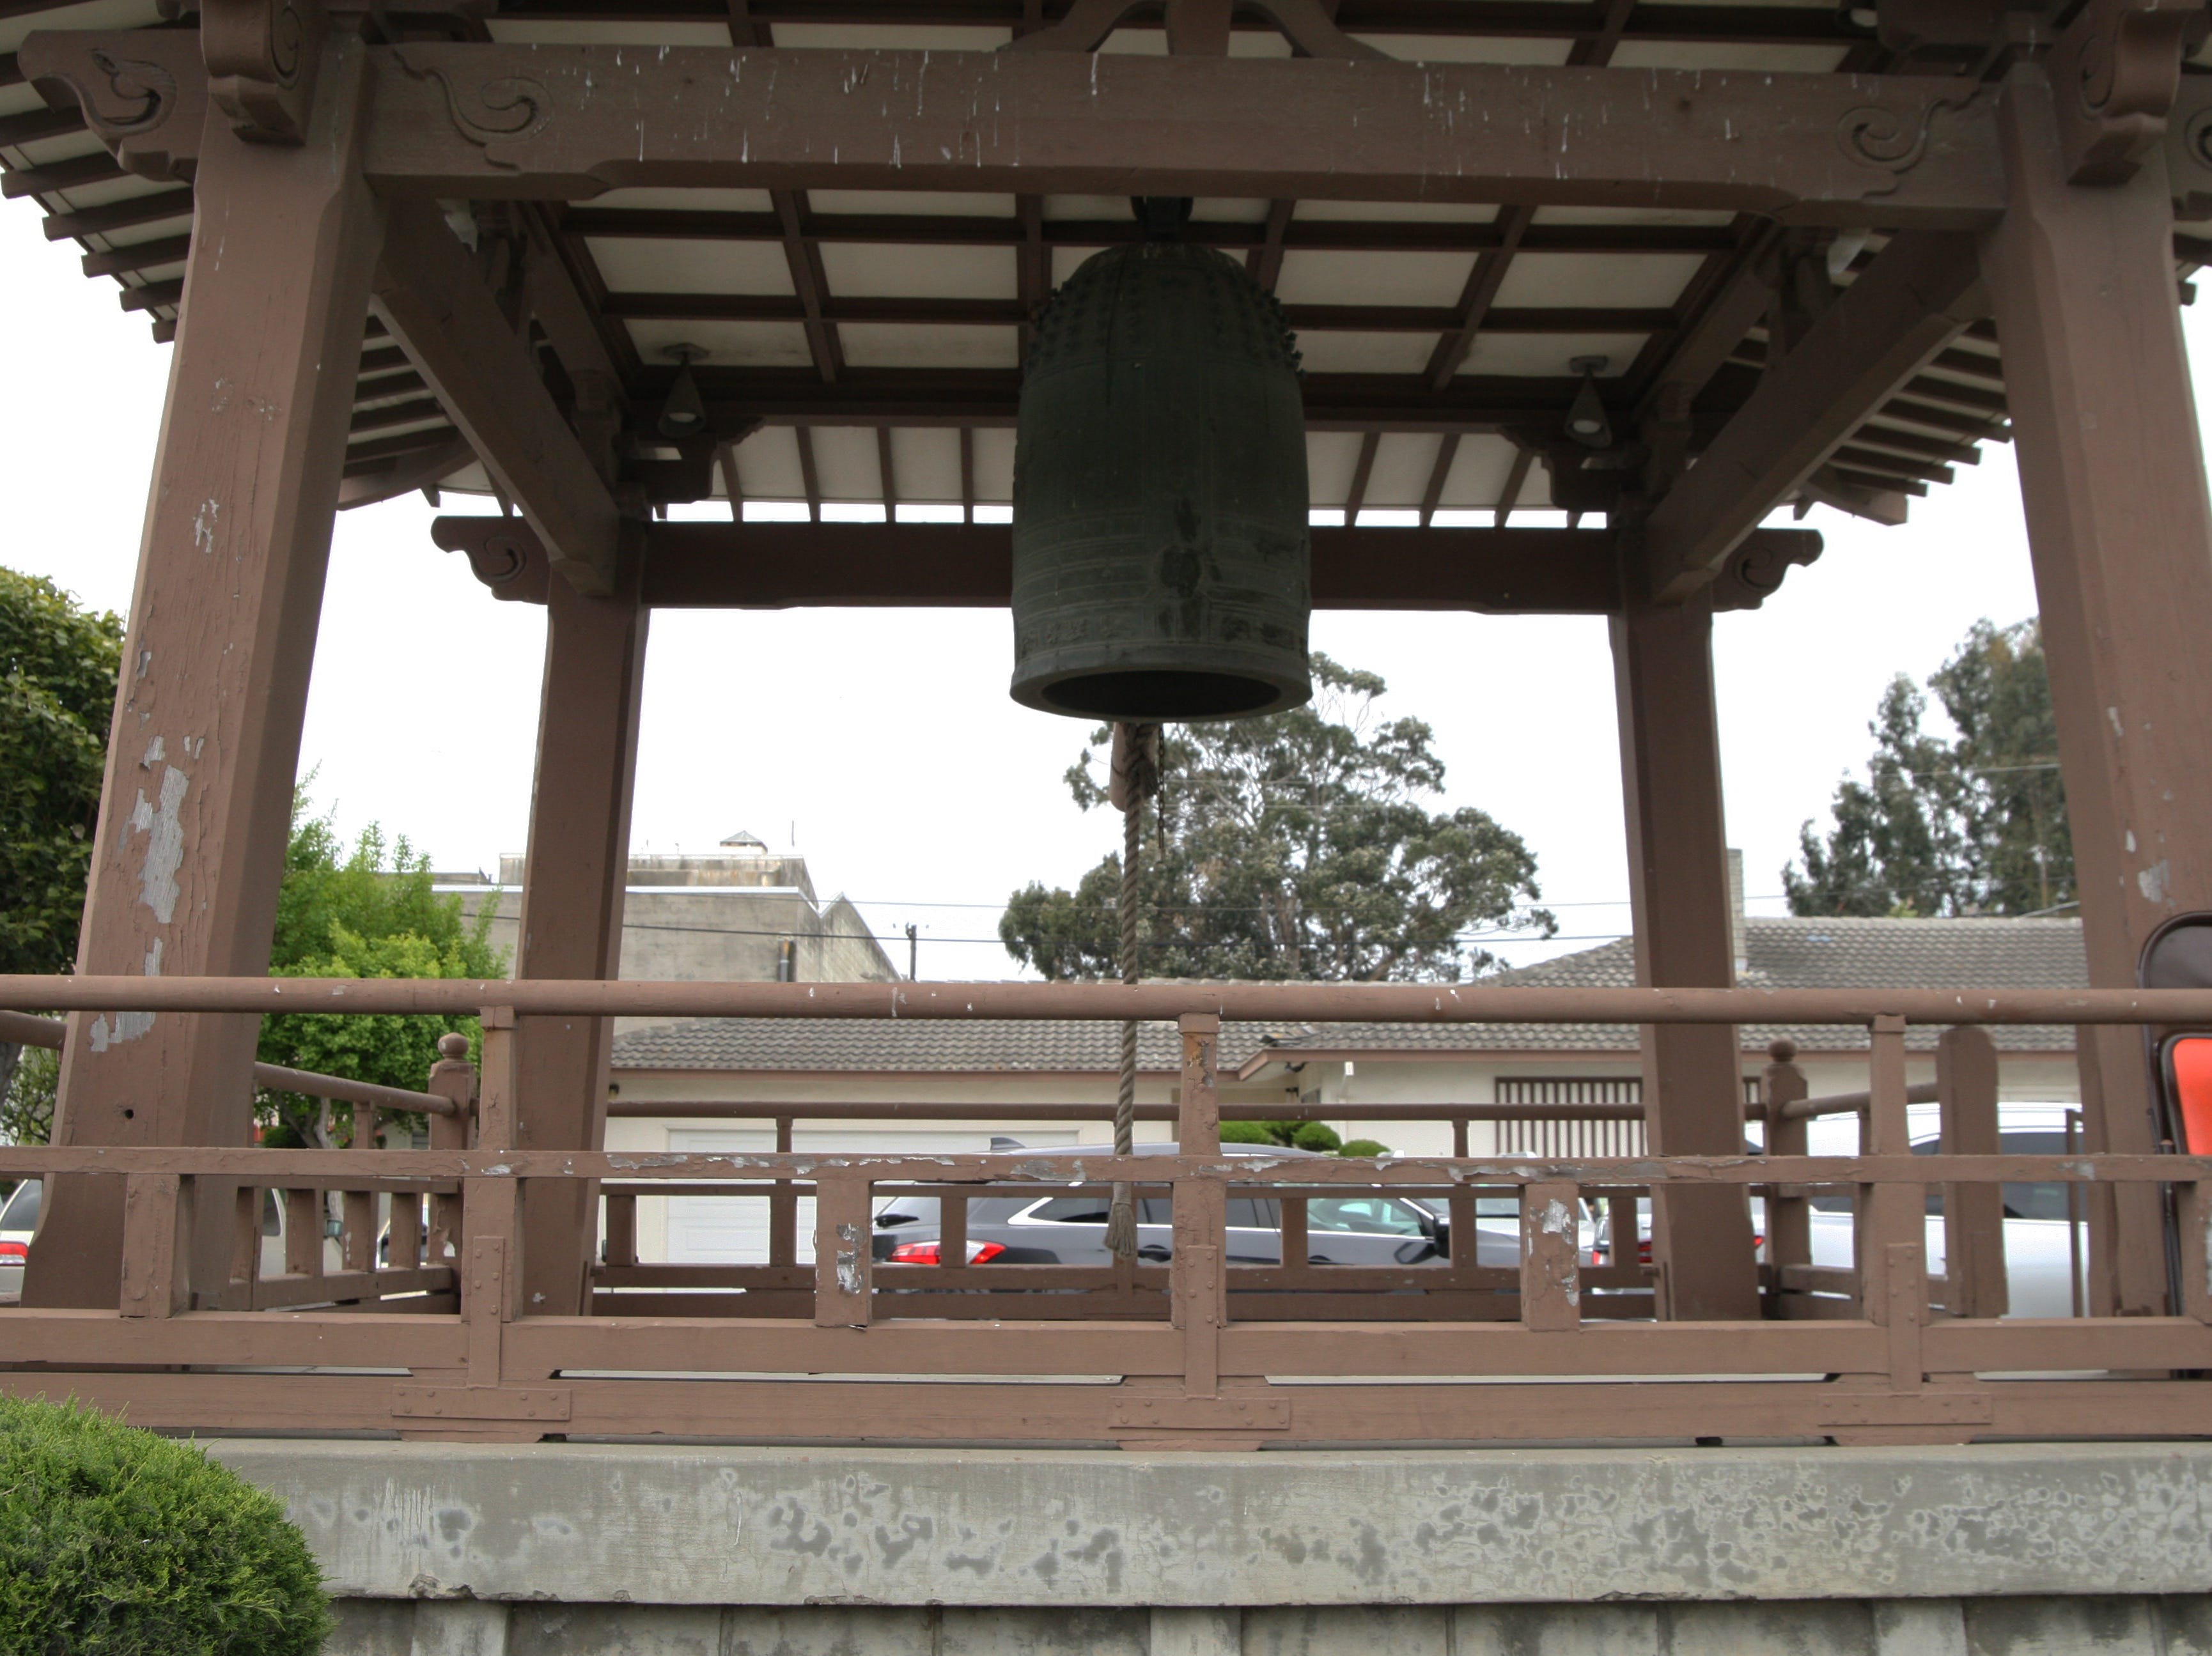 The gong outside the Salinas Bhuddist Temple, which hosted part of the Annual Asian Festival. April 27, 2019.